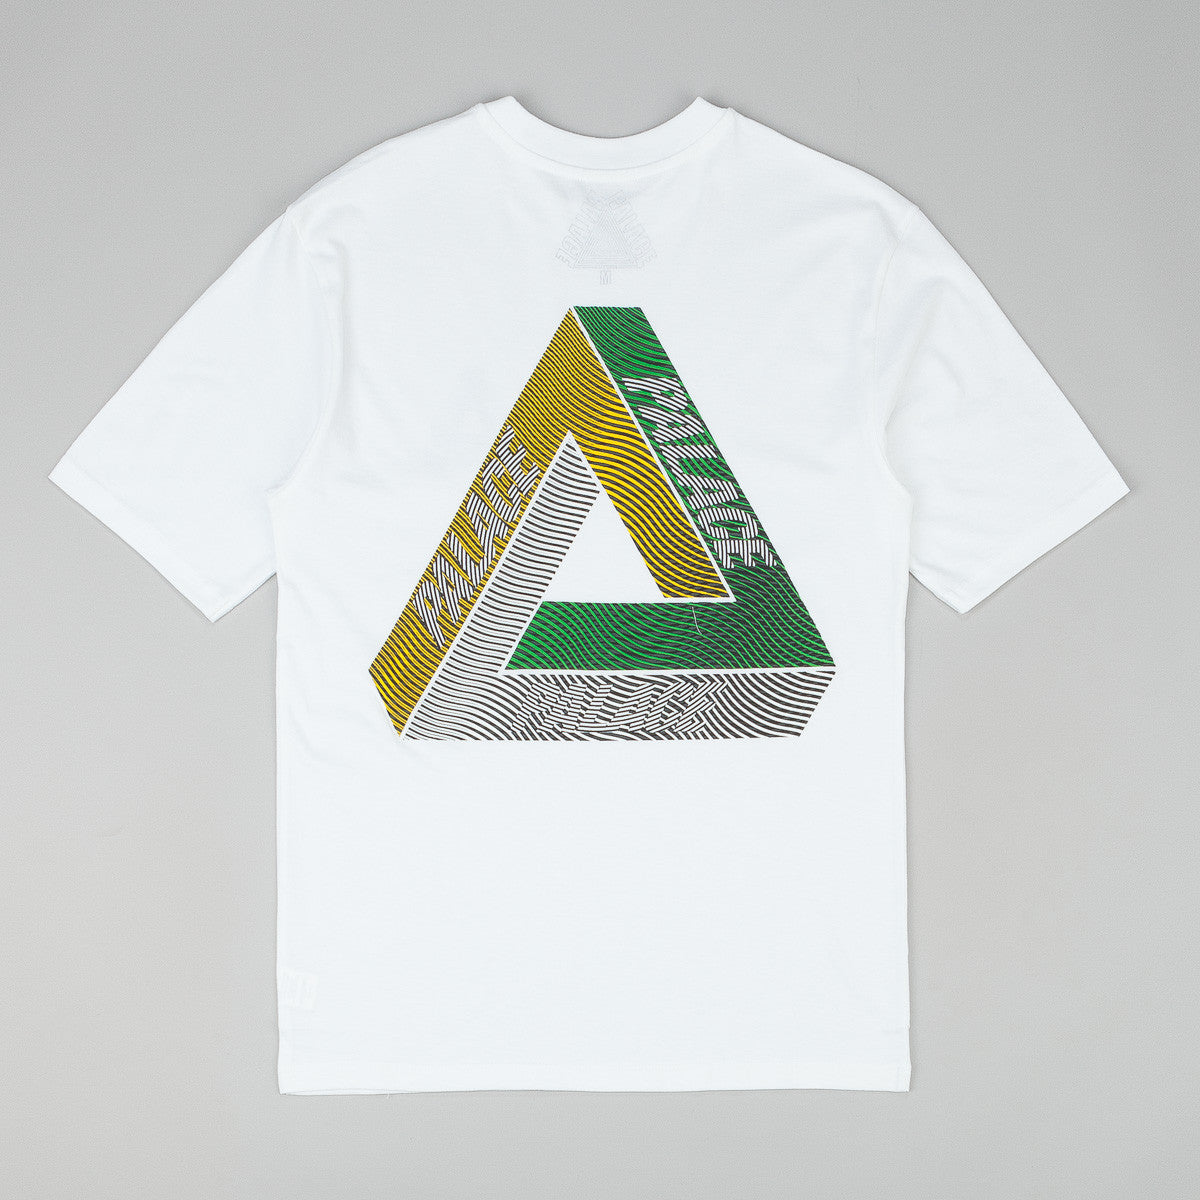 Palace Drury Yard T-Shirt - White